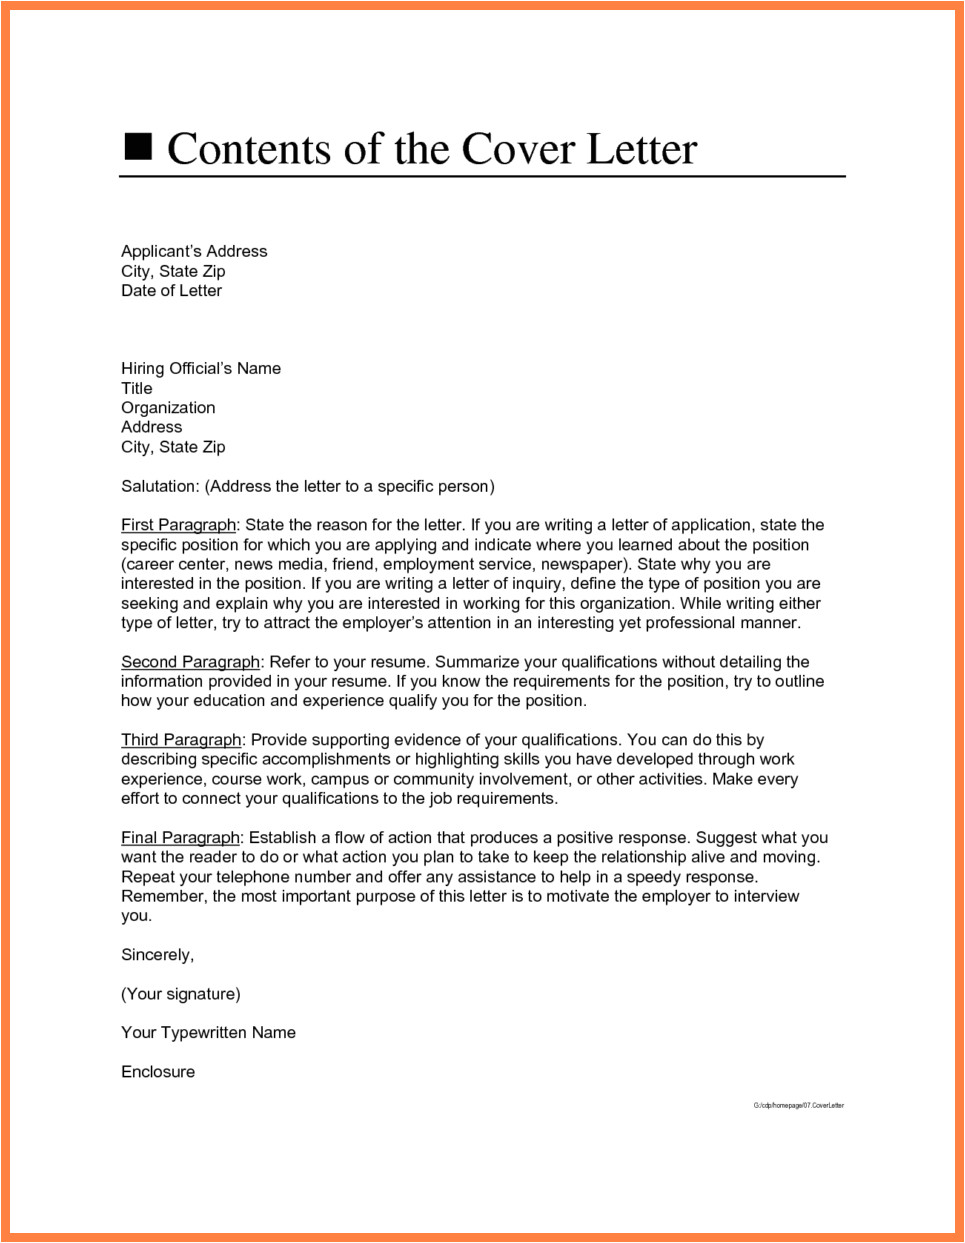 Who to Address the Cover Letter to 5 Cover Letter Address Marital Settlements Information